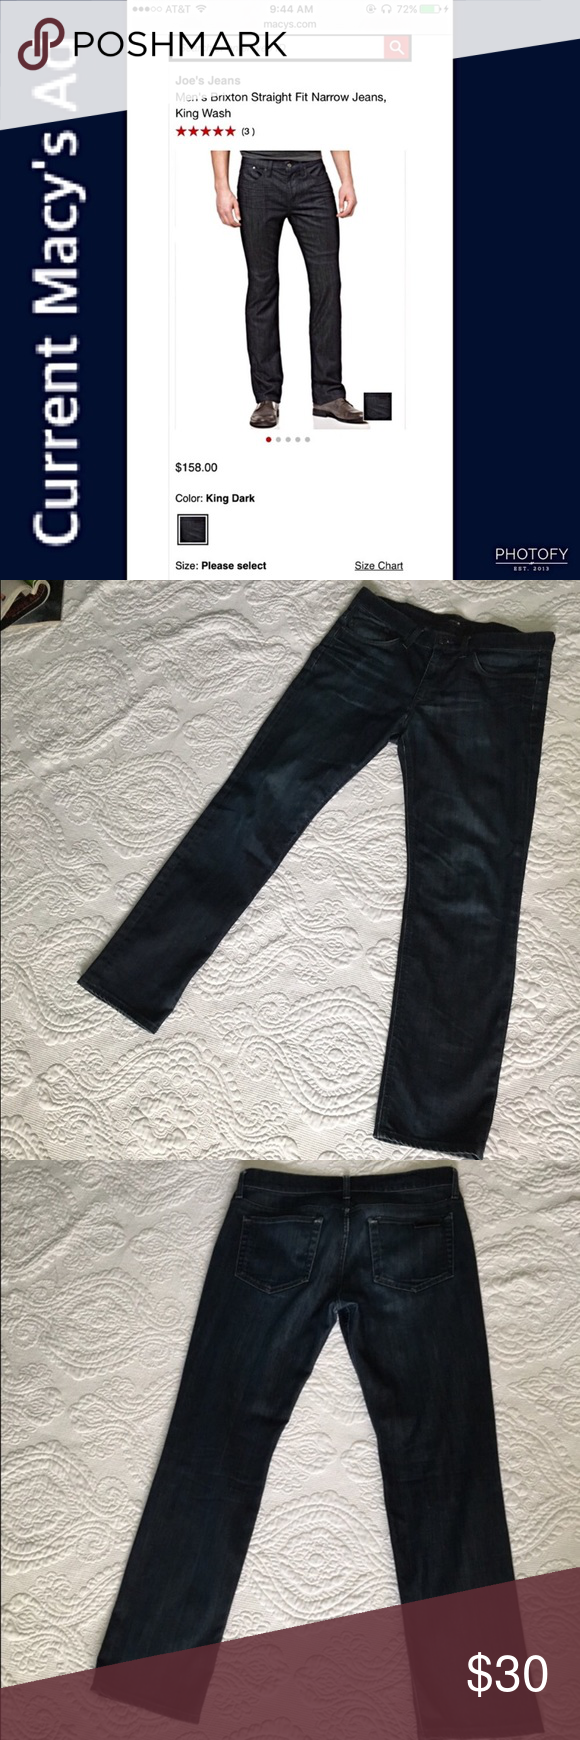 """Joe's Jeans Brixton Straight Narrow 32""""X30"""" Latest style - darker wash - Joe's Jeans Brixton cut. No fraying at leg hems. See photos ⬆️ Approx. Inseam 30"""" (+ 1/2"""") 🚭Nonsmoking Home. ✅Pet friendly, we have a Morkie. 🚫Sorry No Trading. Joe's Jeans Jeans Straight"""